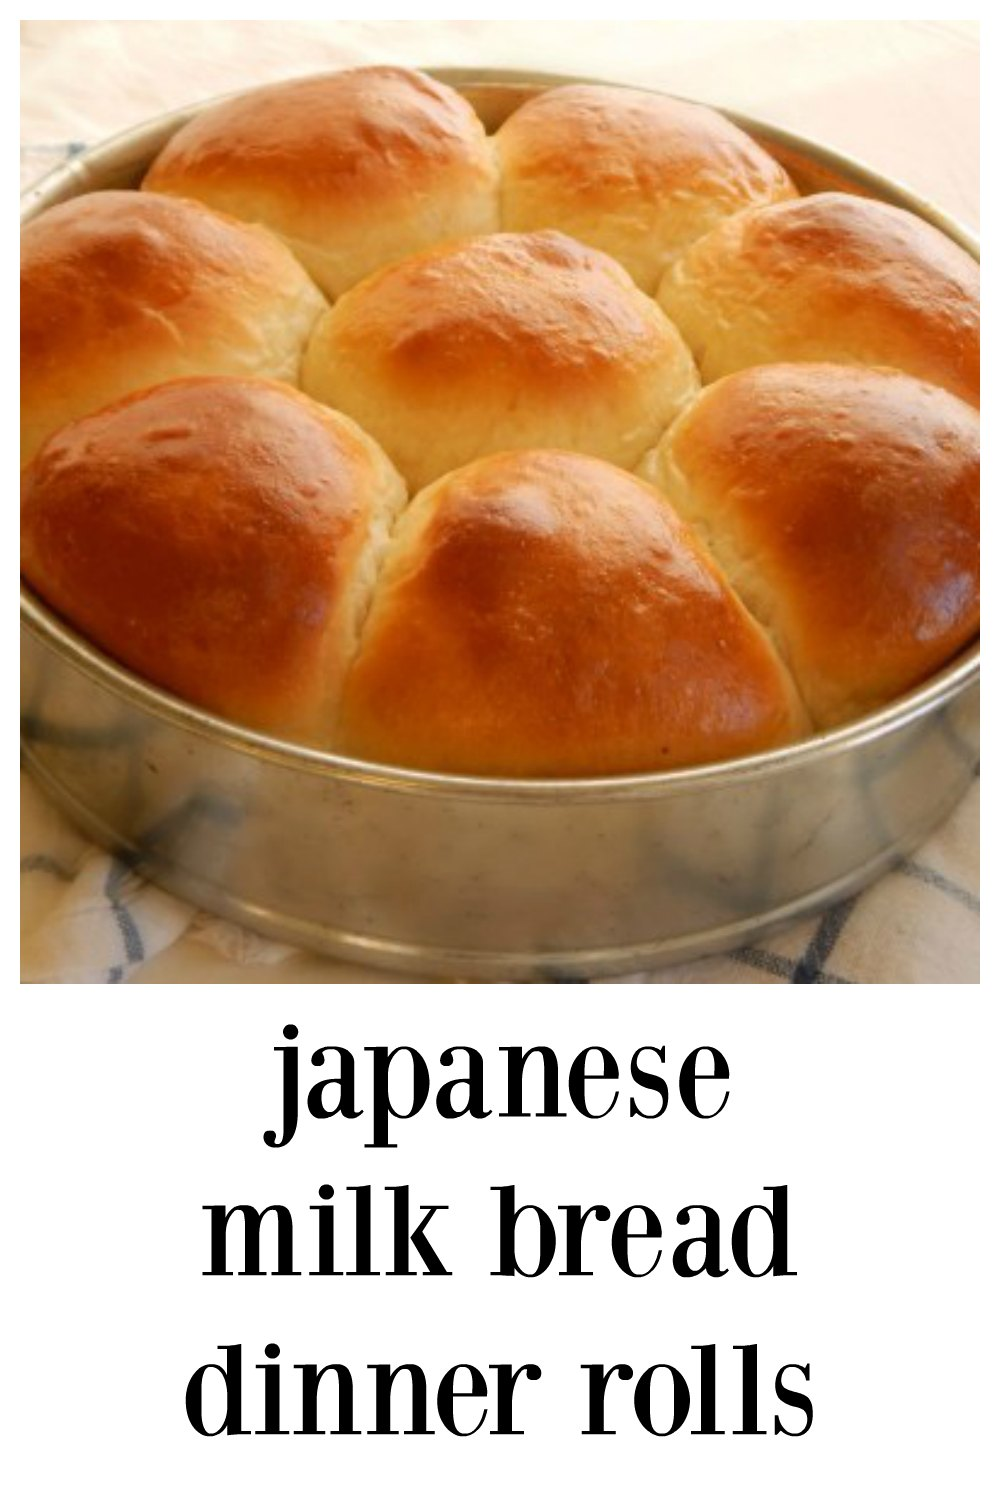 apanese Milk Bread Dinner Rolls are rich, light, billowy & insanely good! They rise & bake fast & you'll look like a pro when you bring these to the table. These are SO next level! #JapaneseMilkBread #JapaneseMilkBreadDinnerRolls #JapaneseDinnerRolls